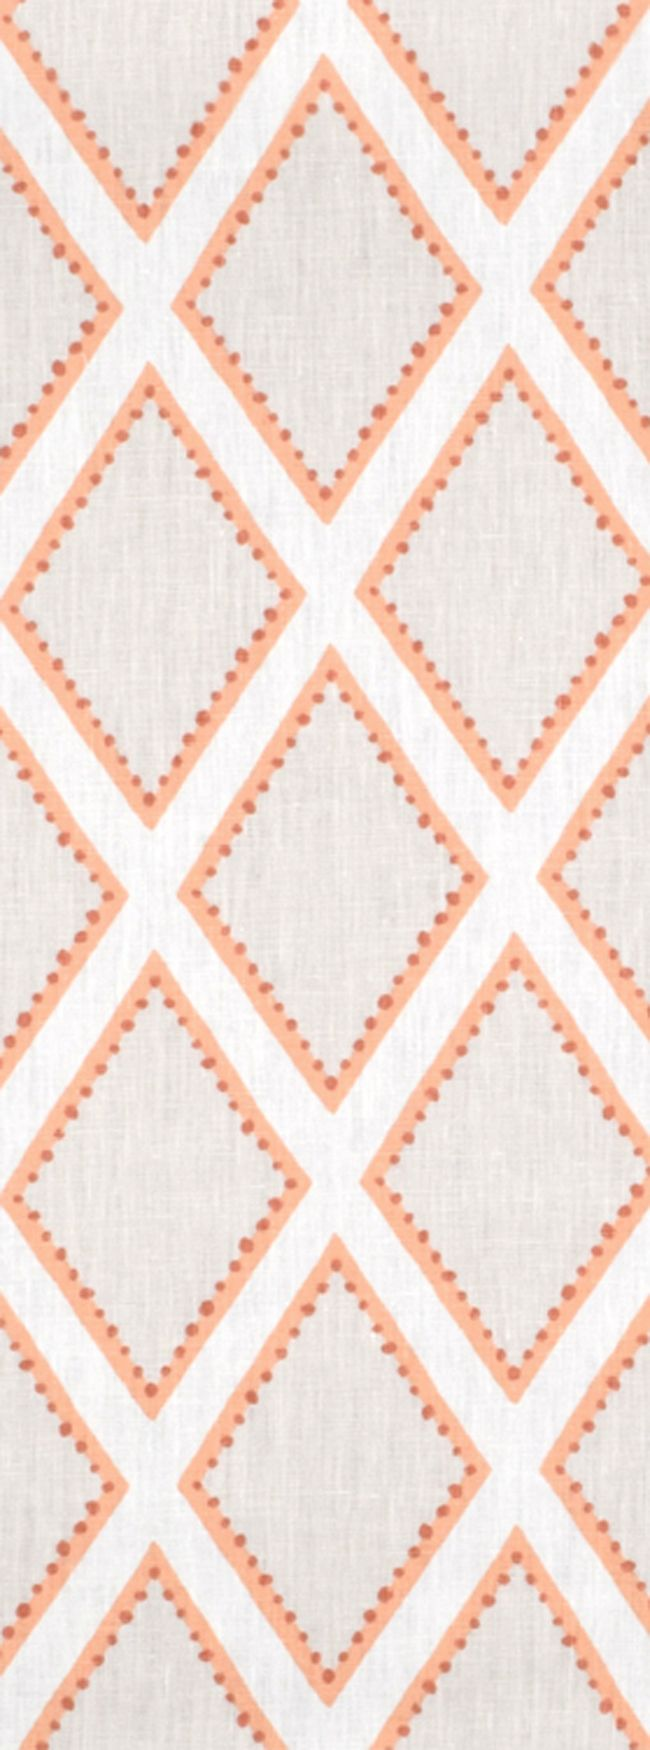 Diamond shaped Portfolio Brookhaven Coral Fabric $31.45 per yard